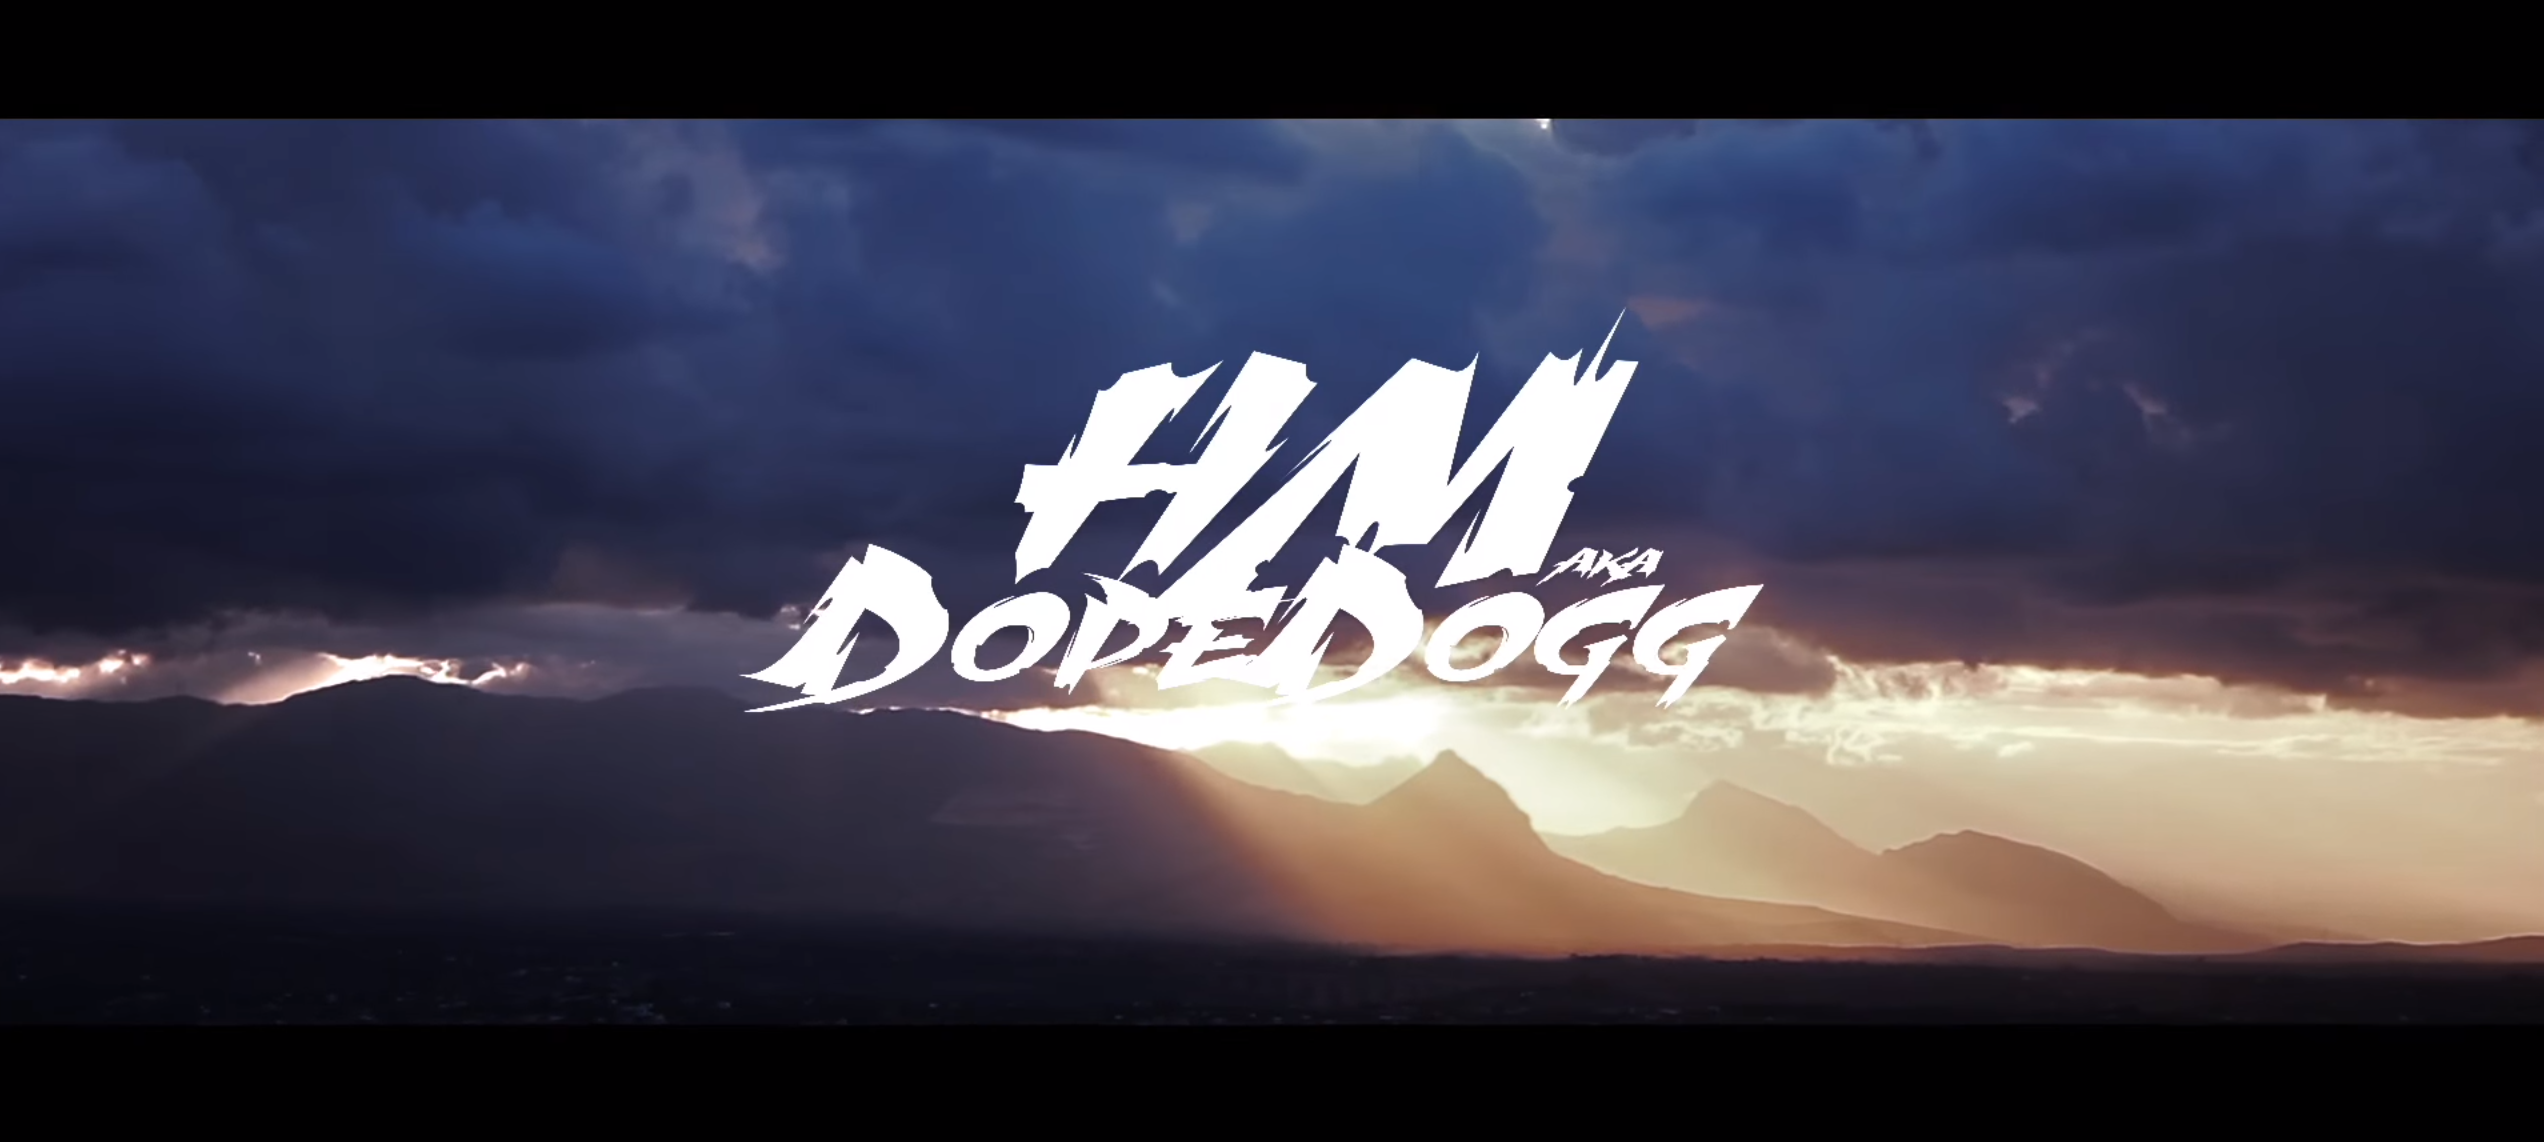 Dopedogg coming soon